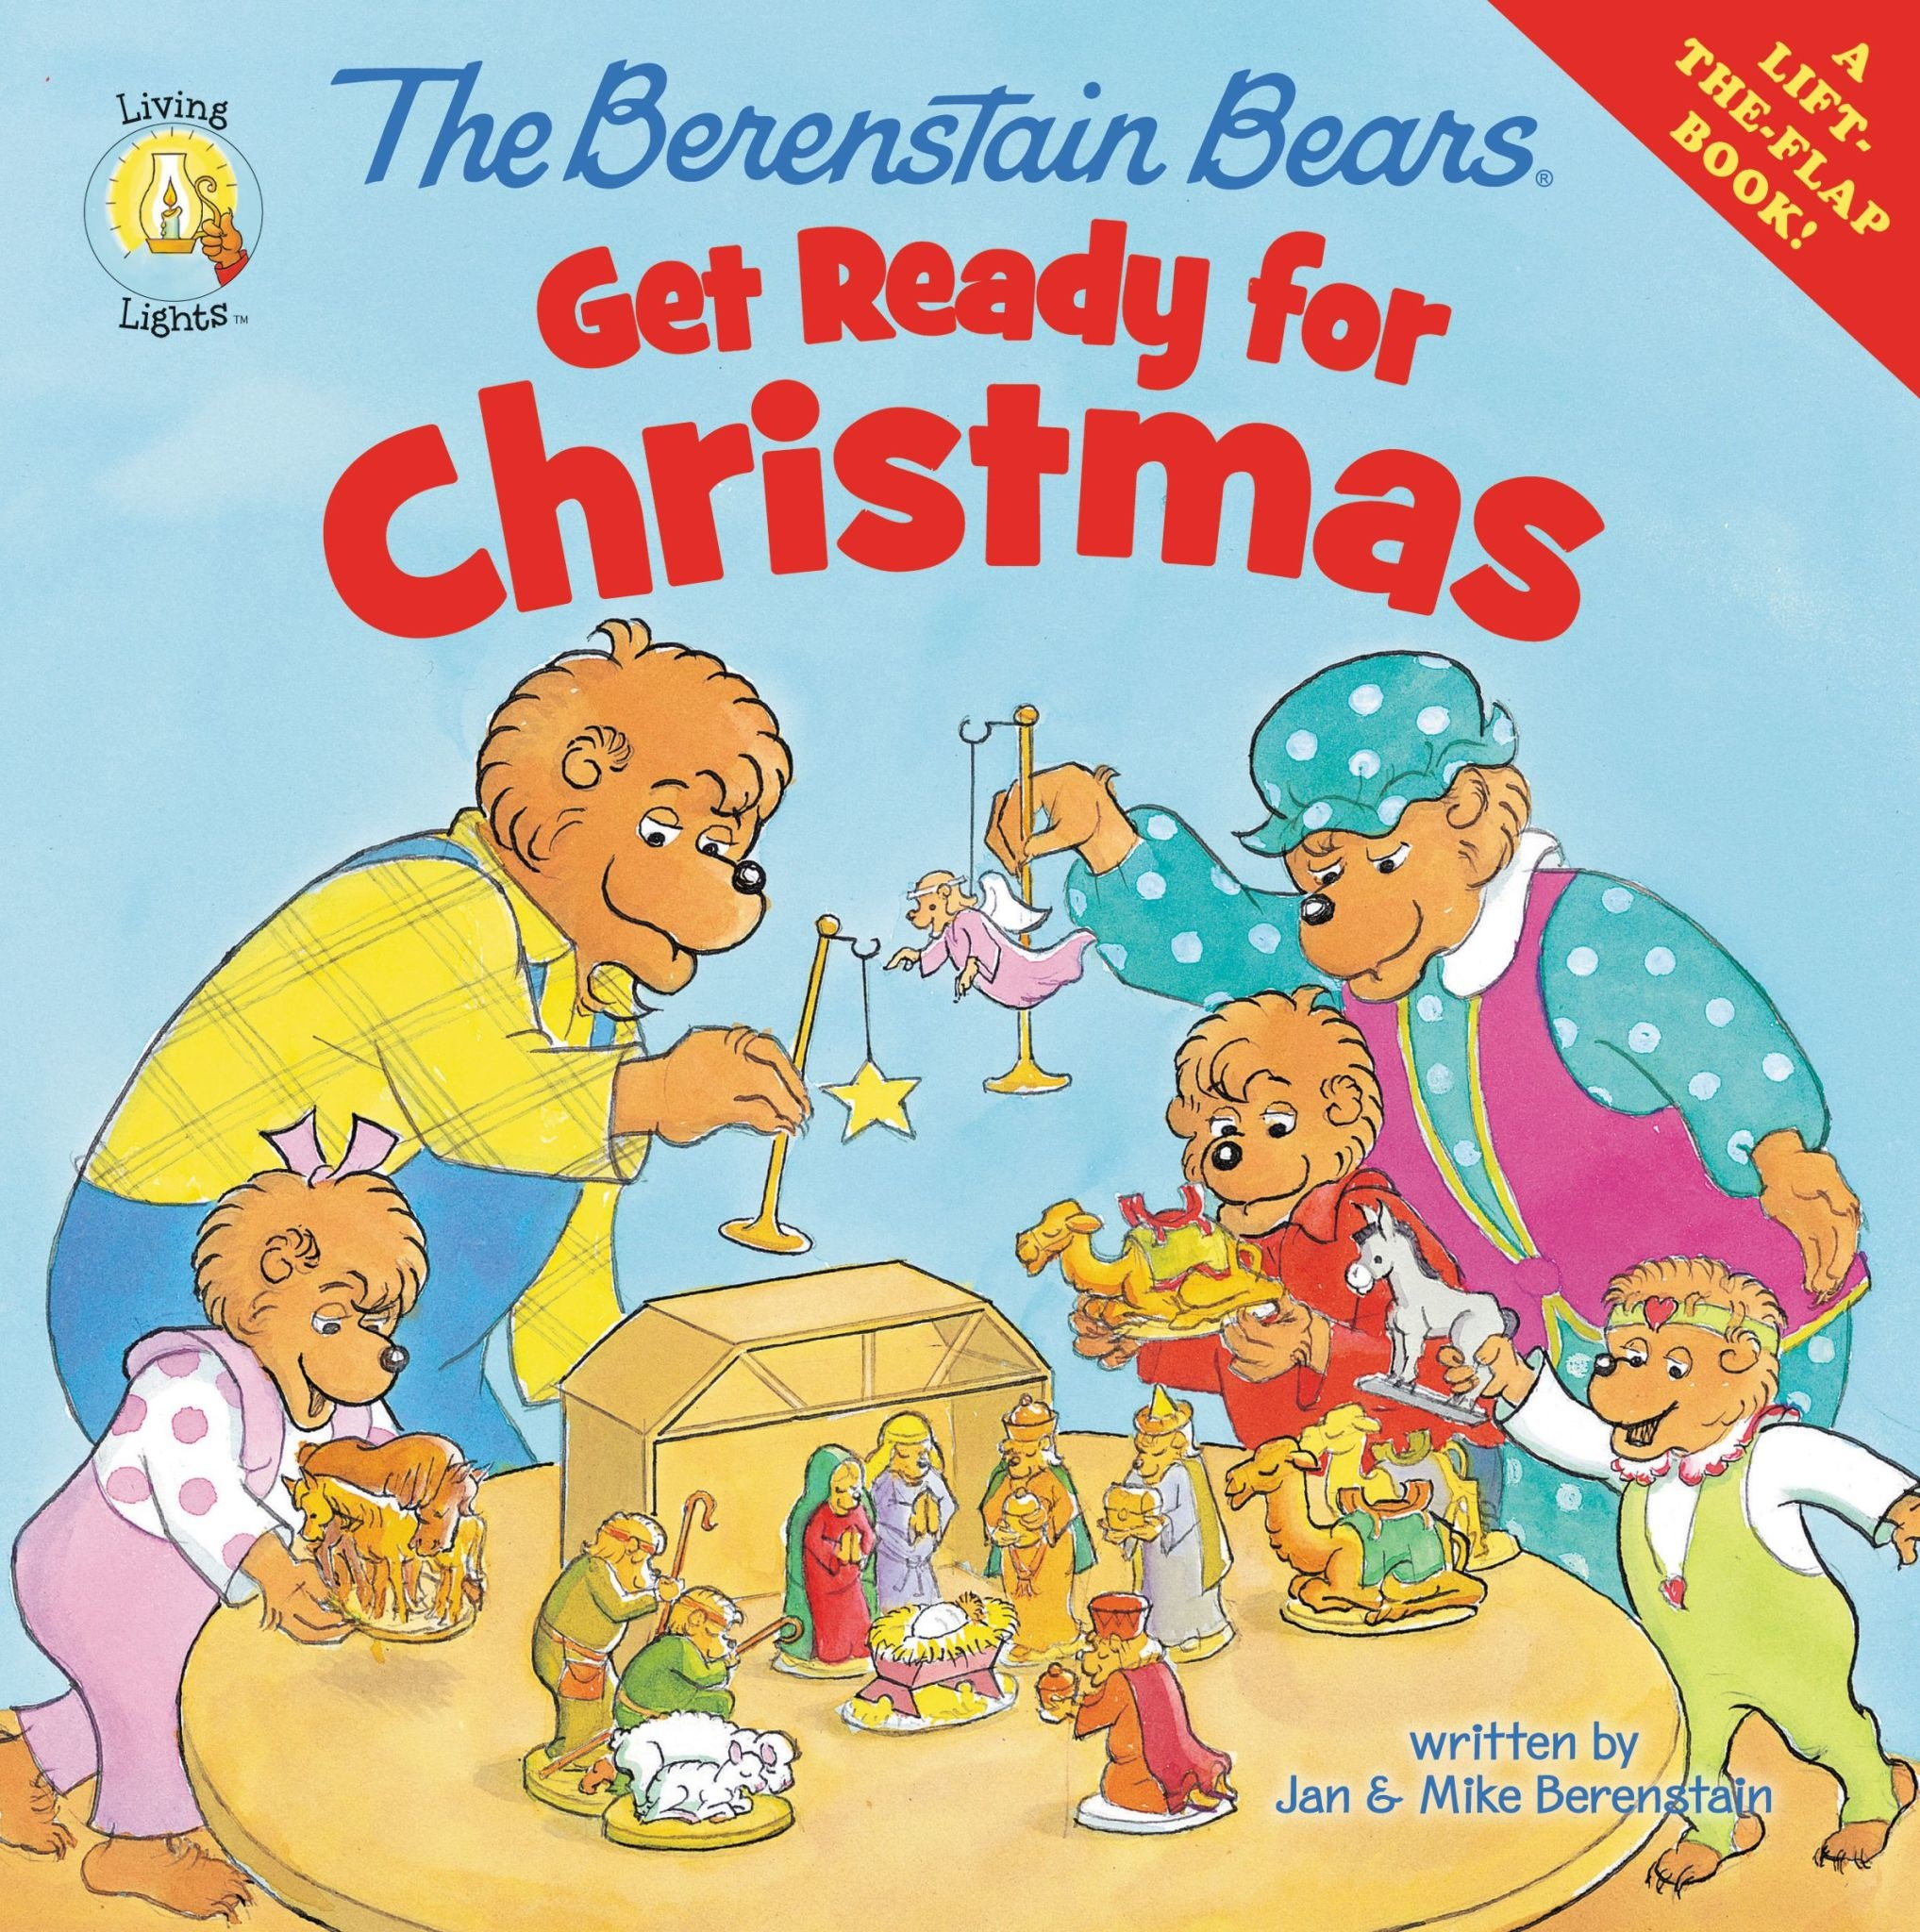 JAN BERENSTAIN The Berenstain Bears Get Ready For Christmas